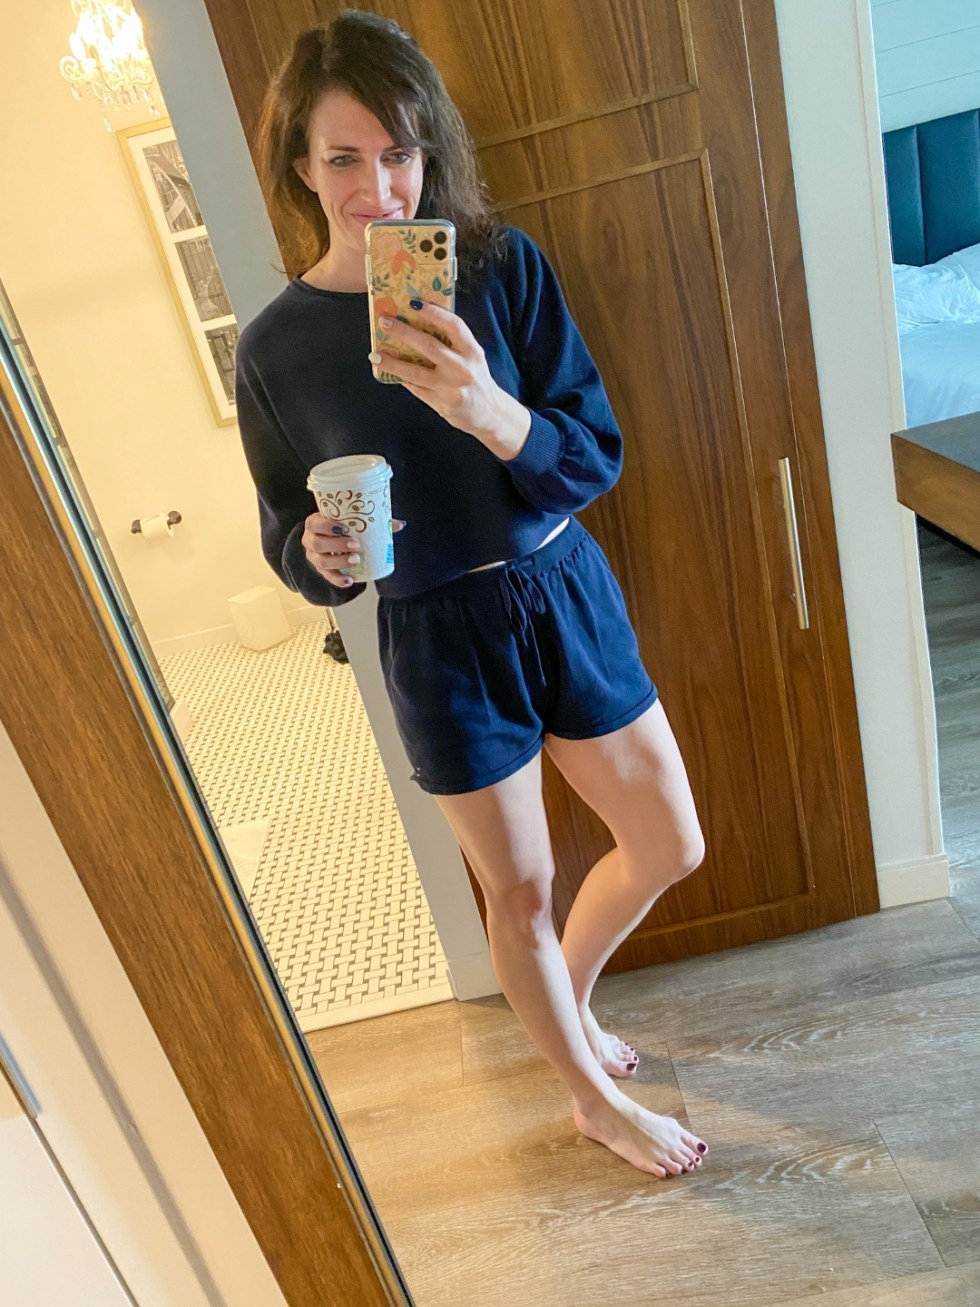 Weekend Travel: The Best Things to Do in Beaufort NC in 48 Hours - I'm Fixin' To - @imfixintoblog |Things to Do in Beaufort NC by popular NC travel blog, I'm Fixin' To: image of a woman wearing a blue loungewear set.